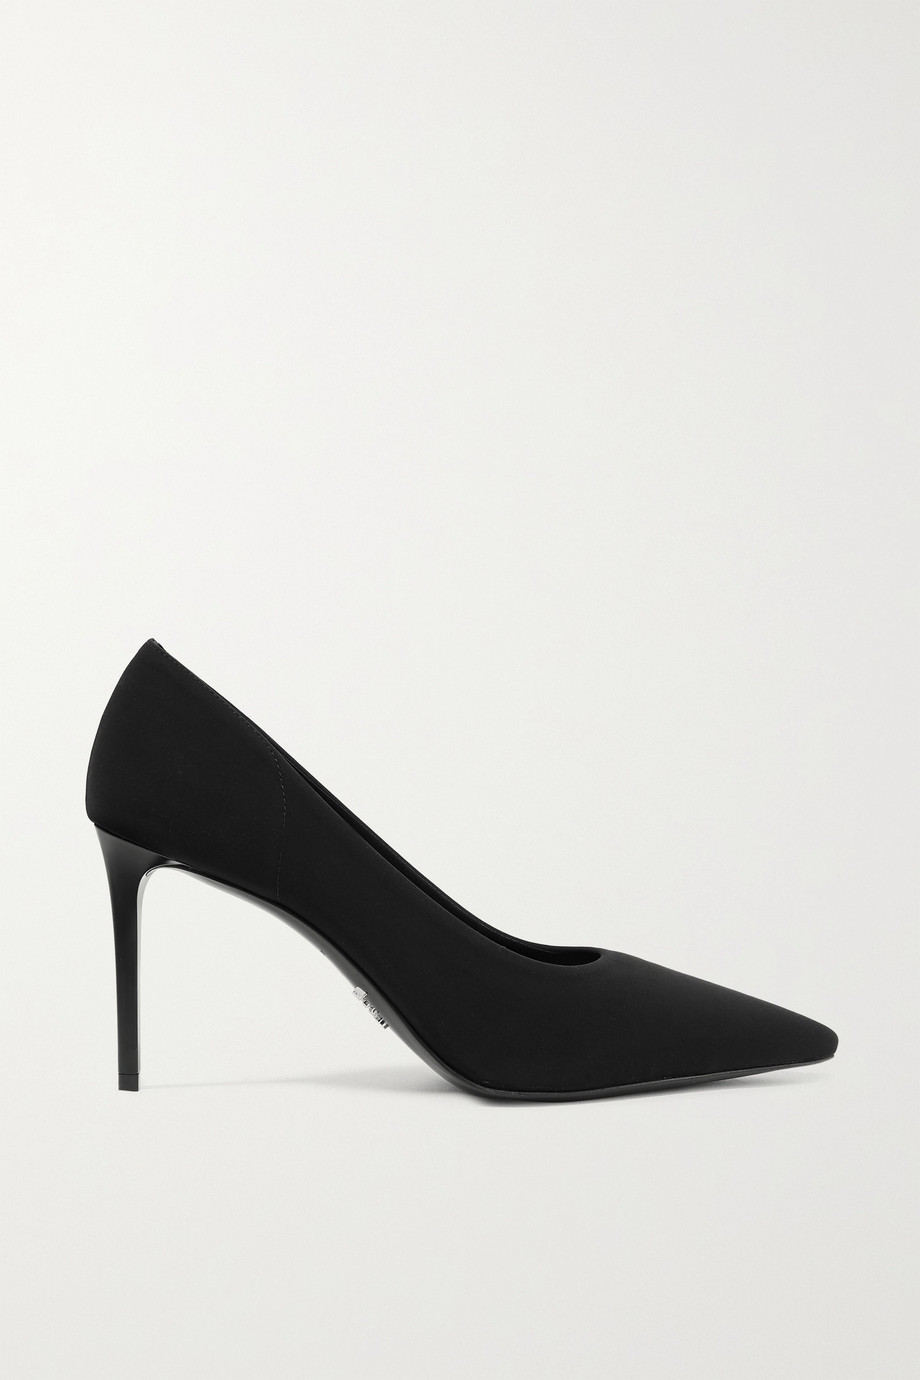 Prada 85 neoprene pumps